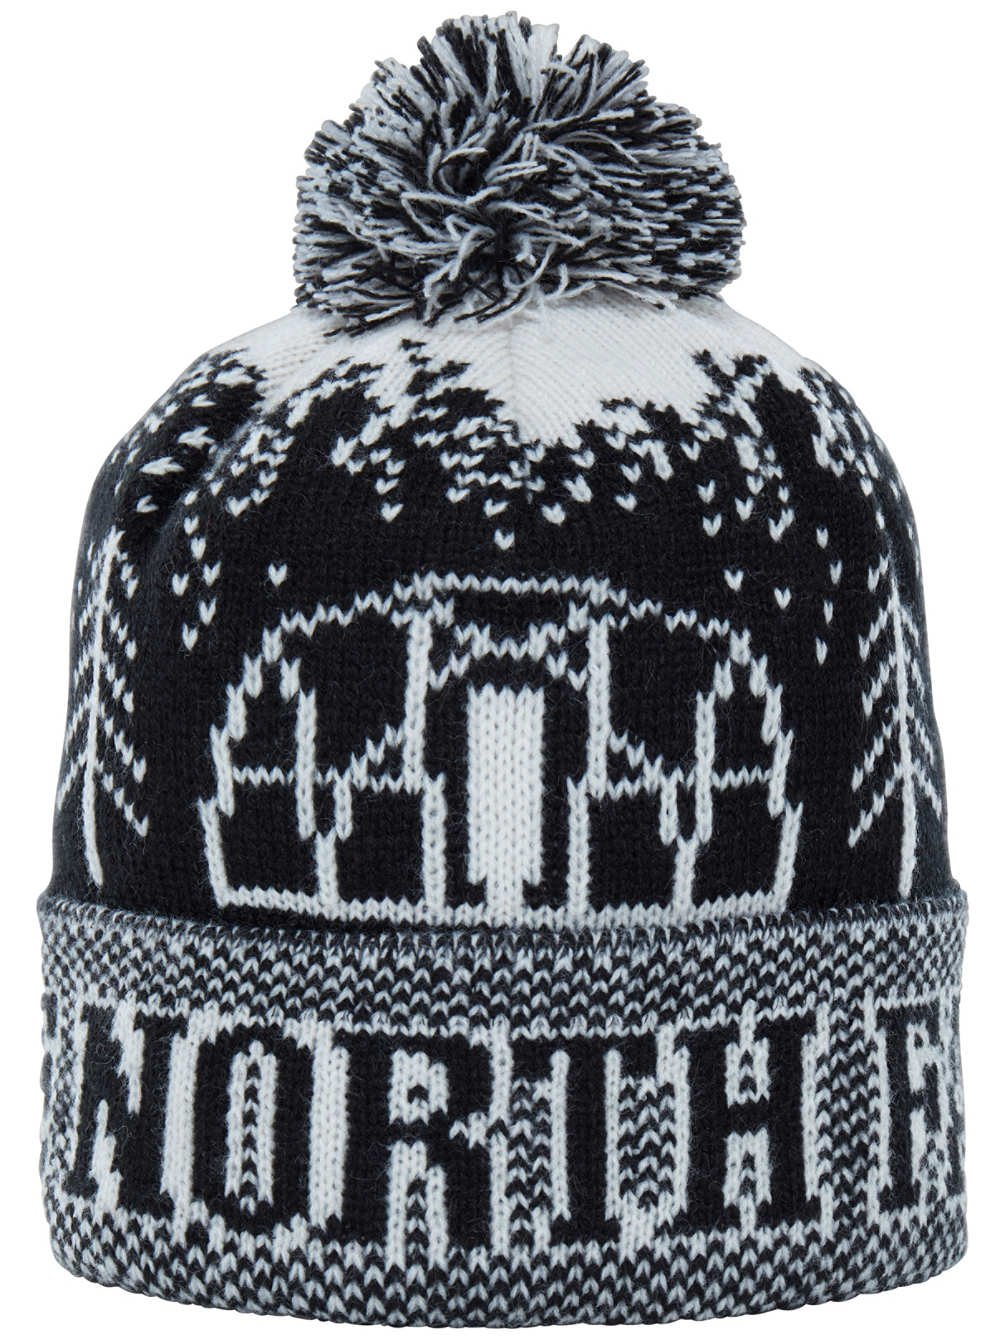 The North Face Men's Fair Isle Pom Beanie (One Size) - black, one size